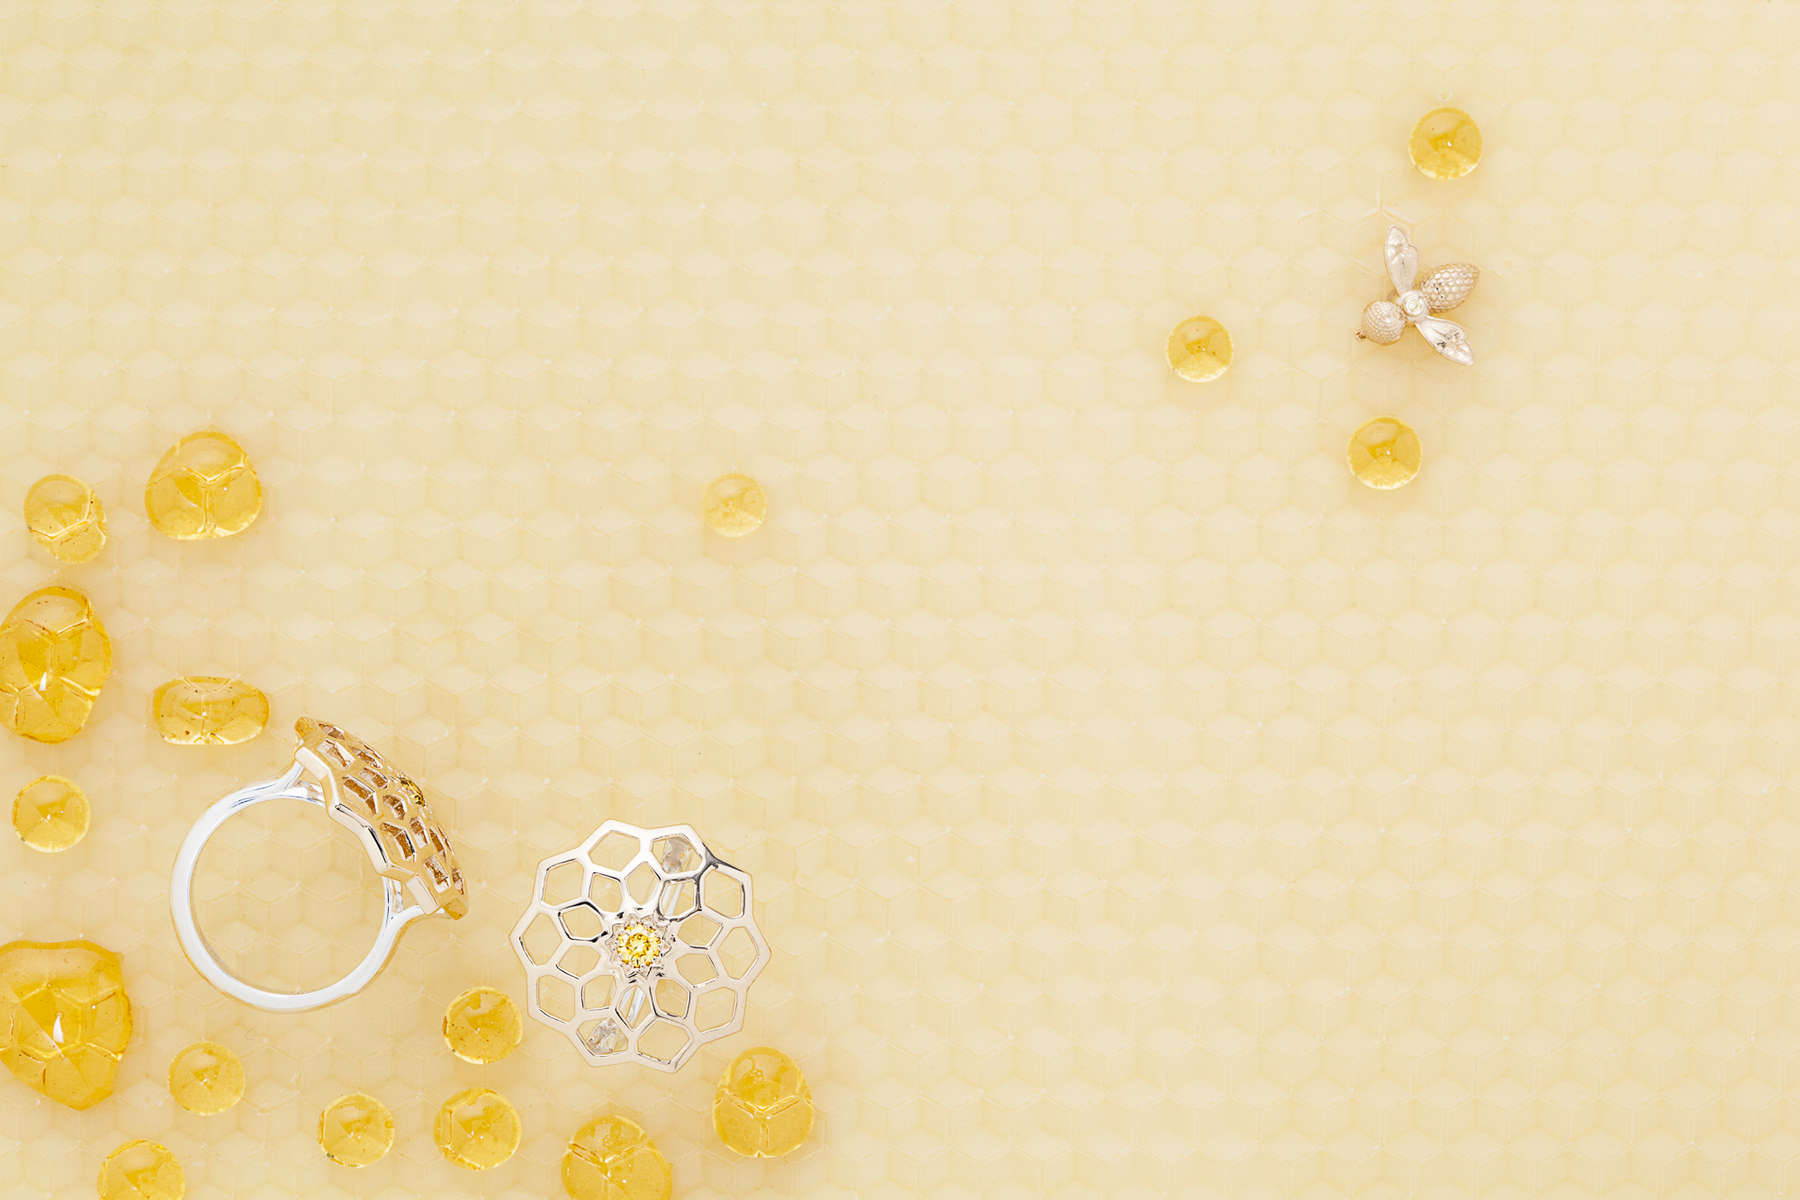 Jewelry photography with honeycomb and bees shot for Perrywinkles Fine Jewelers by Vermont photographers at Reciprocity Studio.